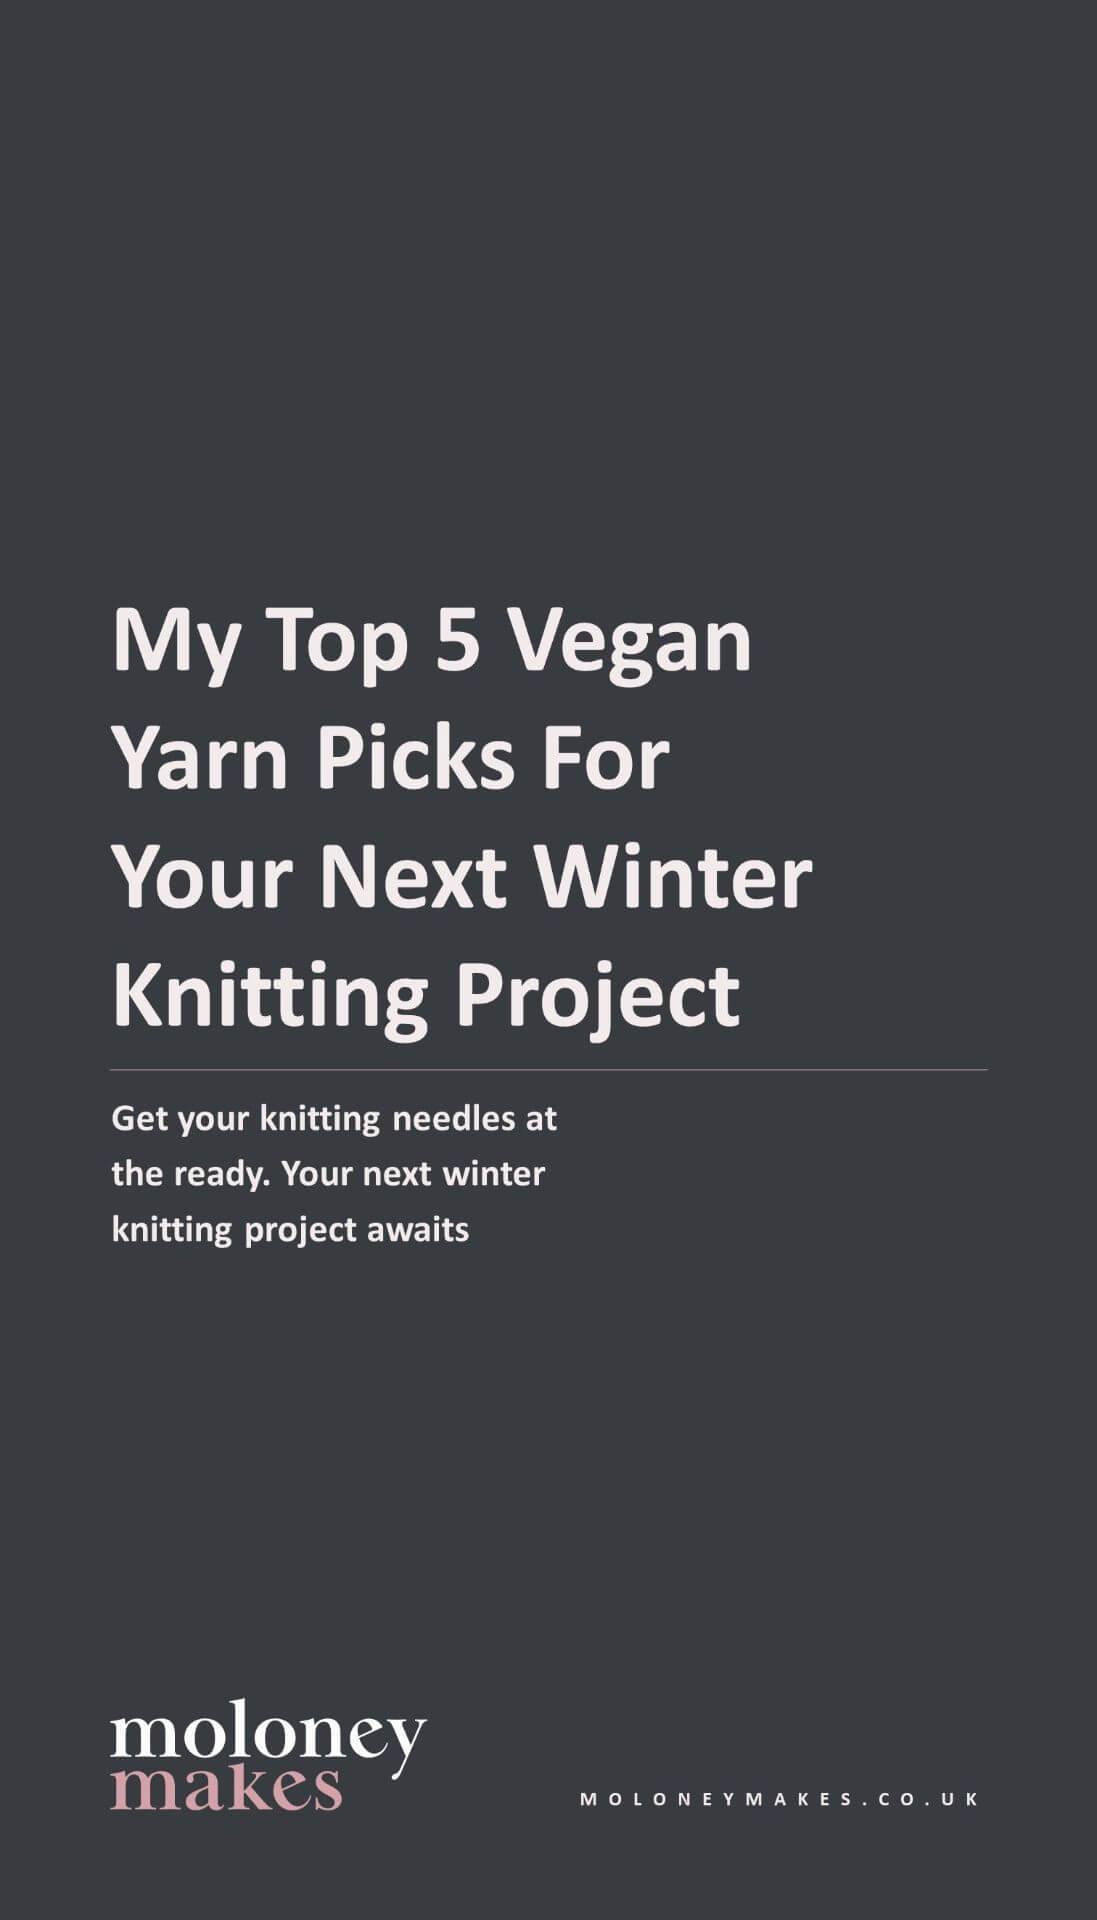 Moloneymakes Blog Pinterest Graphic. My Top 5 Yarn Picks for Your Next Winter Knitting Project